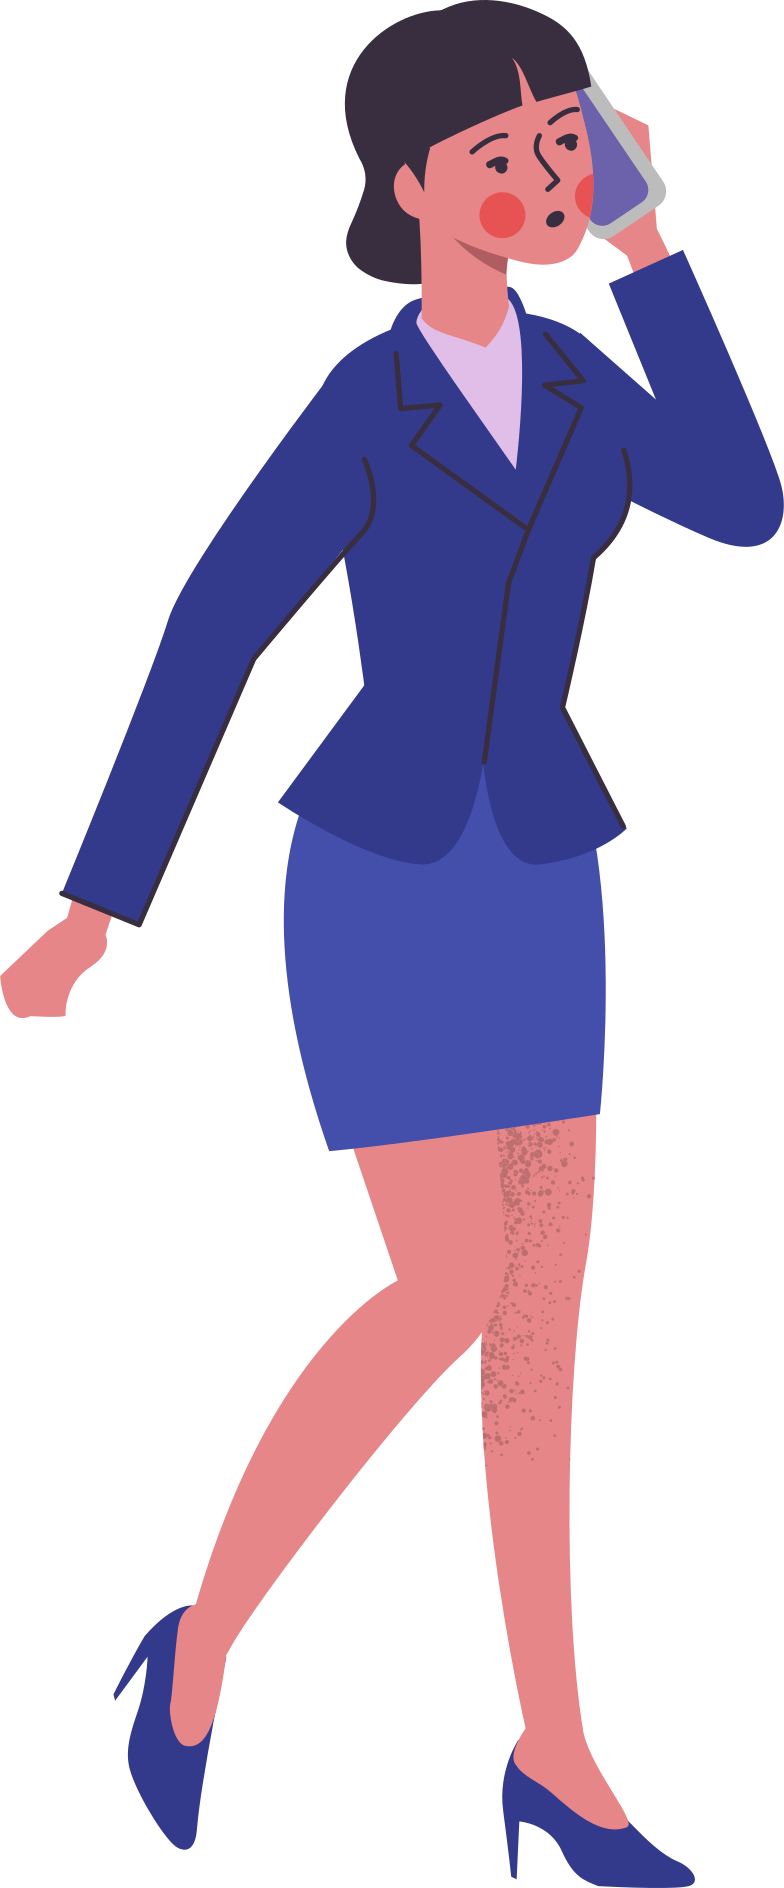 style woman-in-suit Vector images in PNG and SVG | Icons8 Illustrations